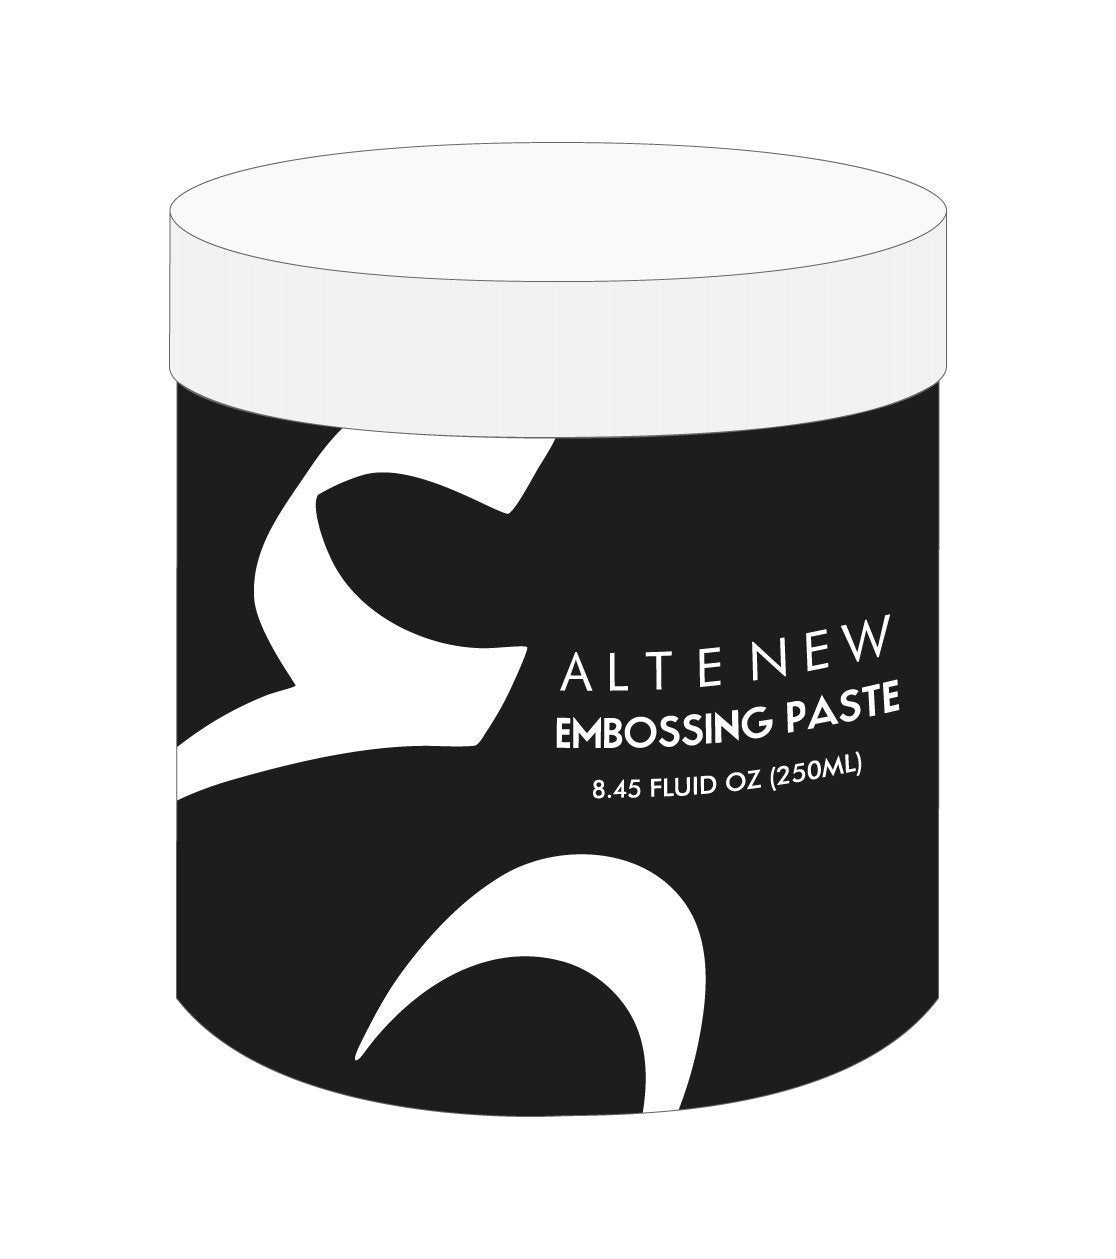 Altenew Embossing Paste | Serendipity Craft Boutique